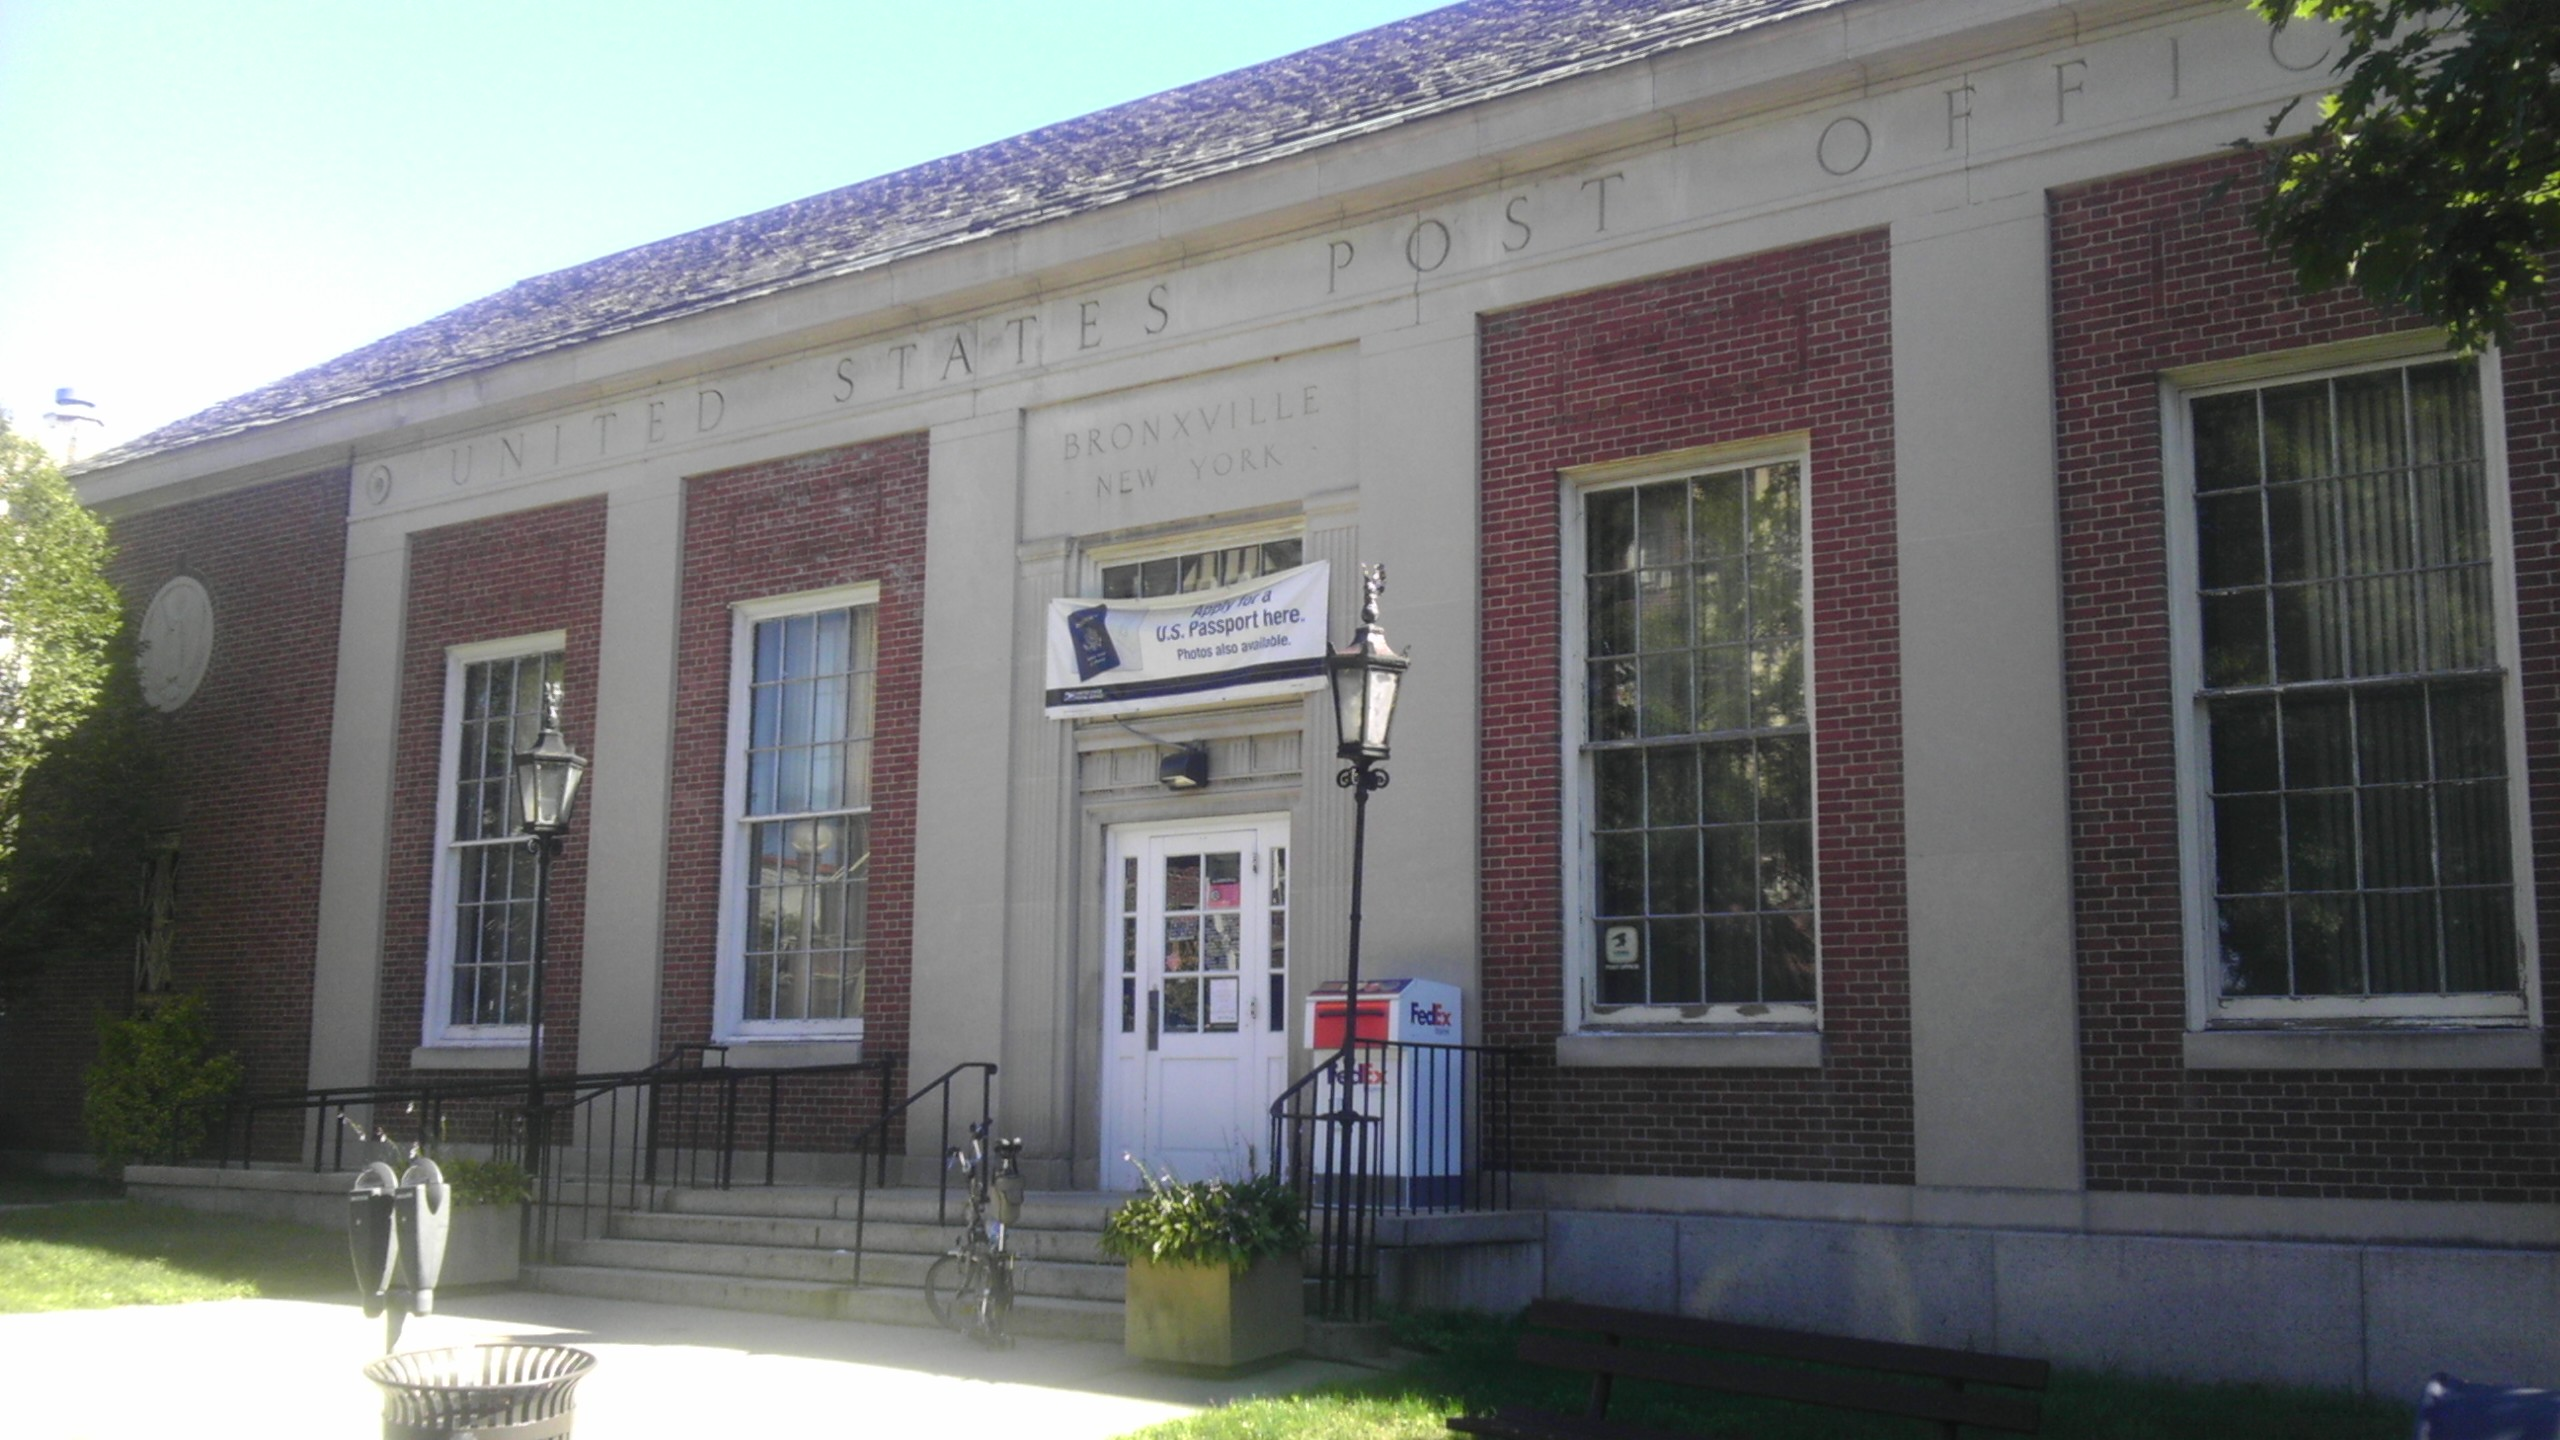 United States Post Office Bronxville New York Wikiwand